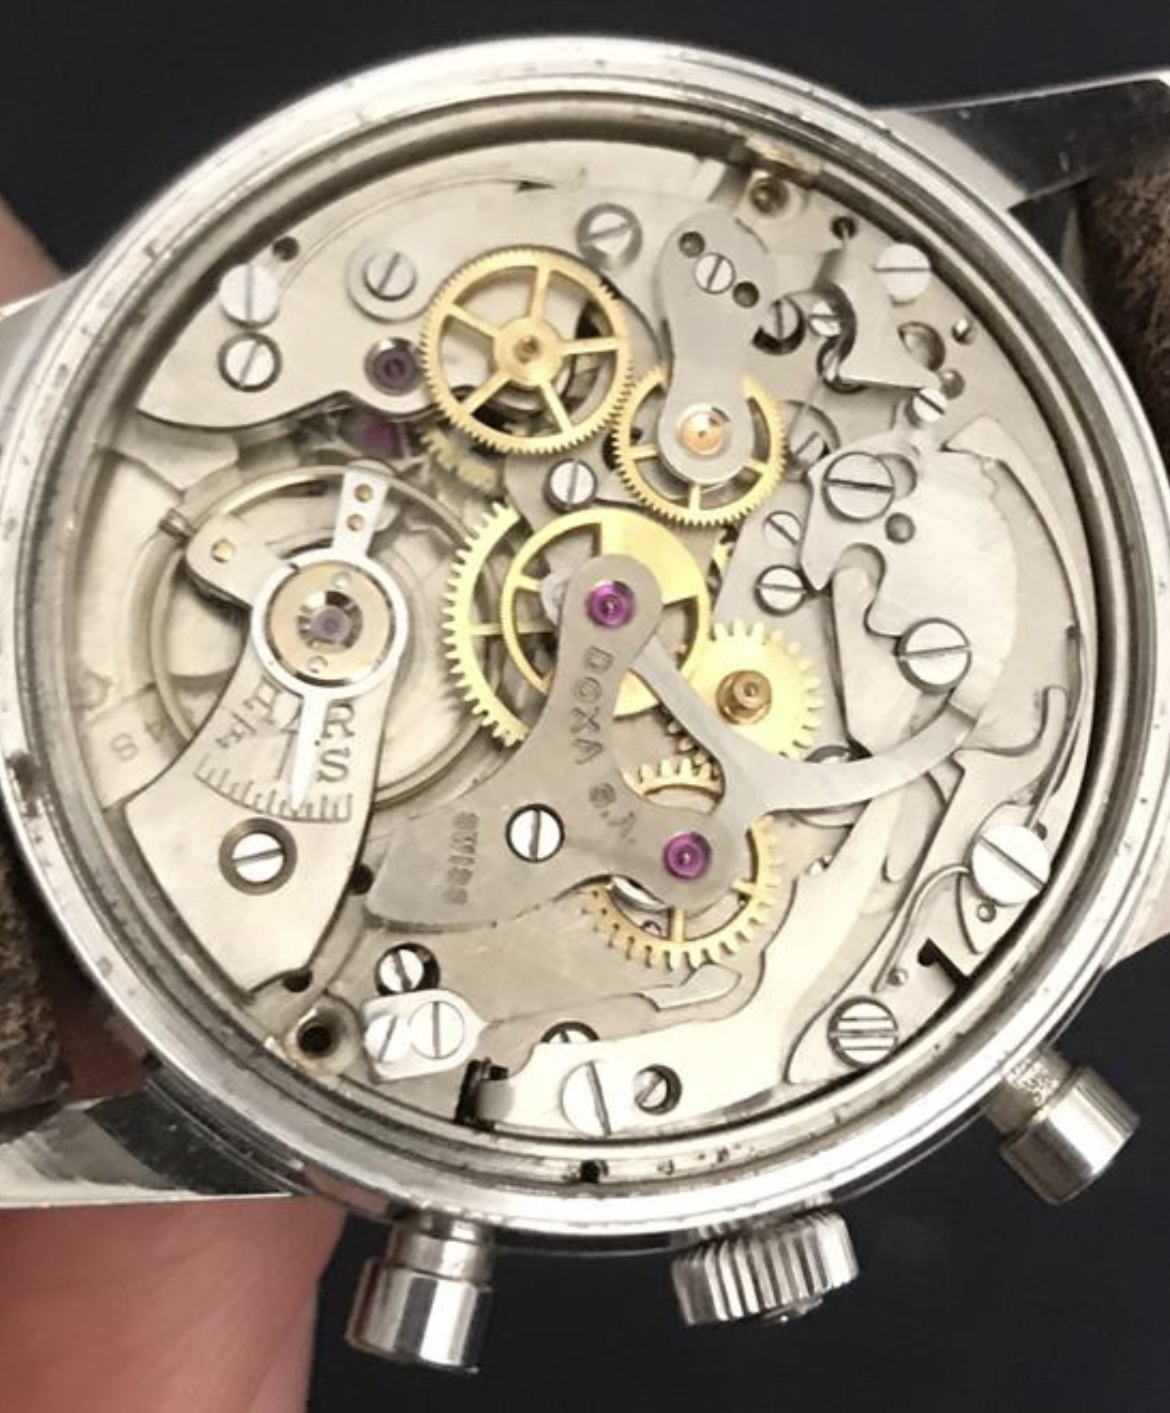 Doxa Vintage Twin Chronograph ref 7105A - Image 5 of 5